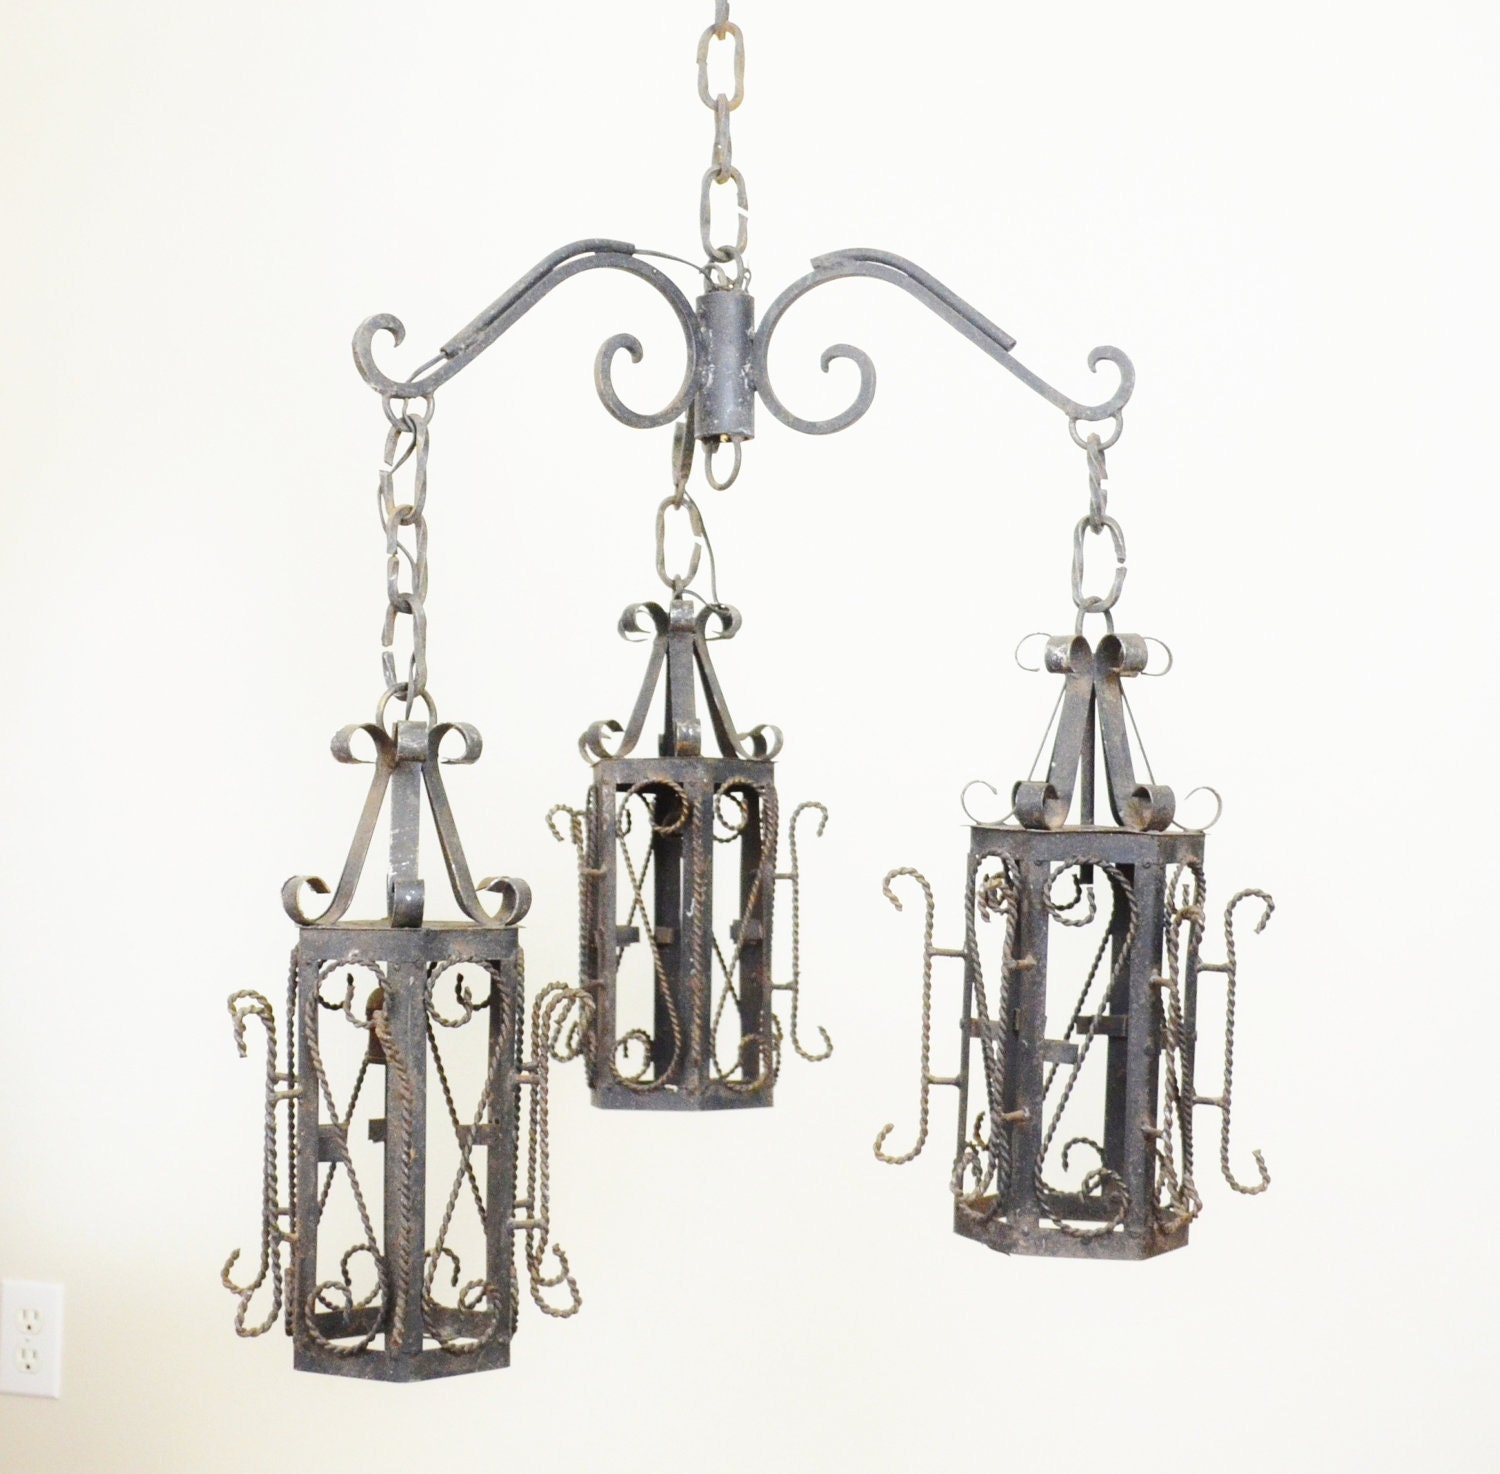 Wrought iron lantern pendant chandelier by luccabalesvintage - Light fixtures chandeliers ...